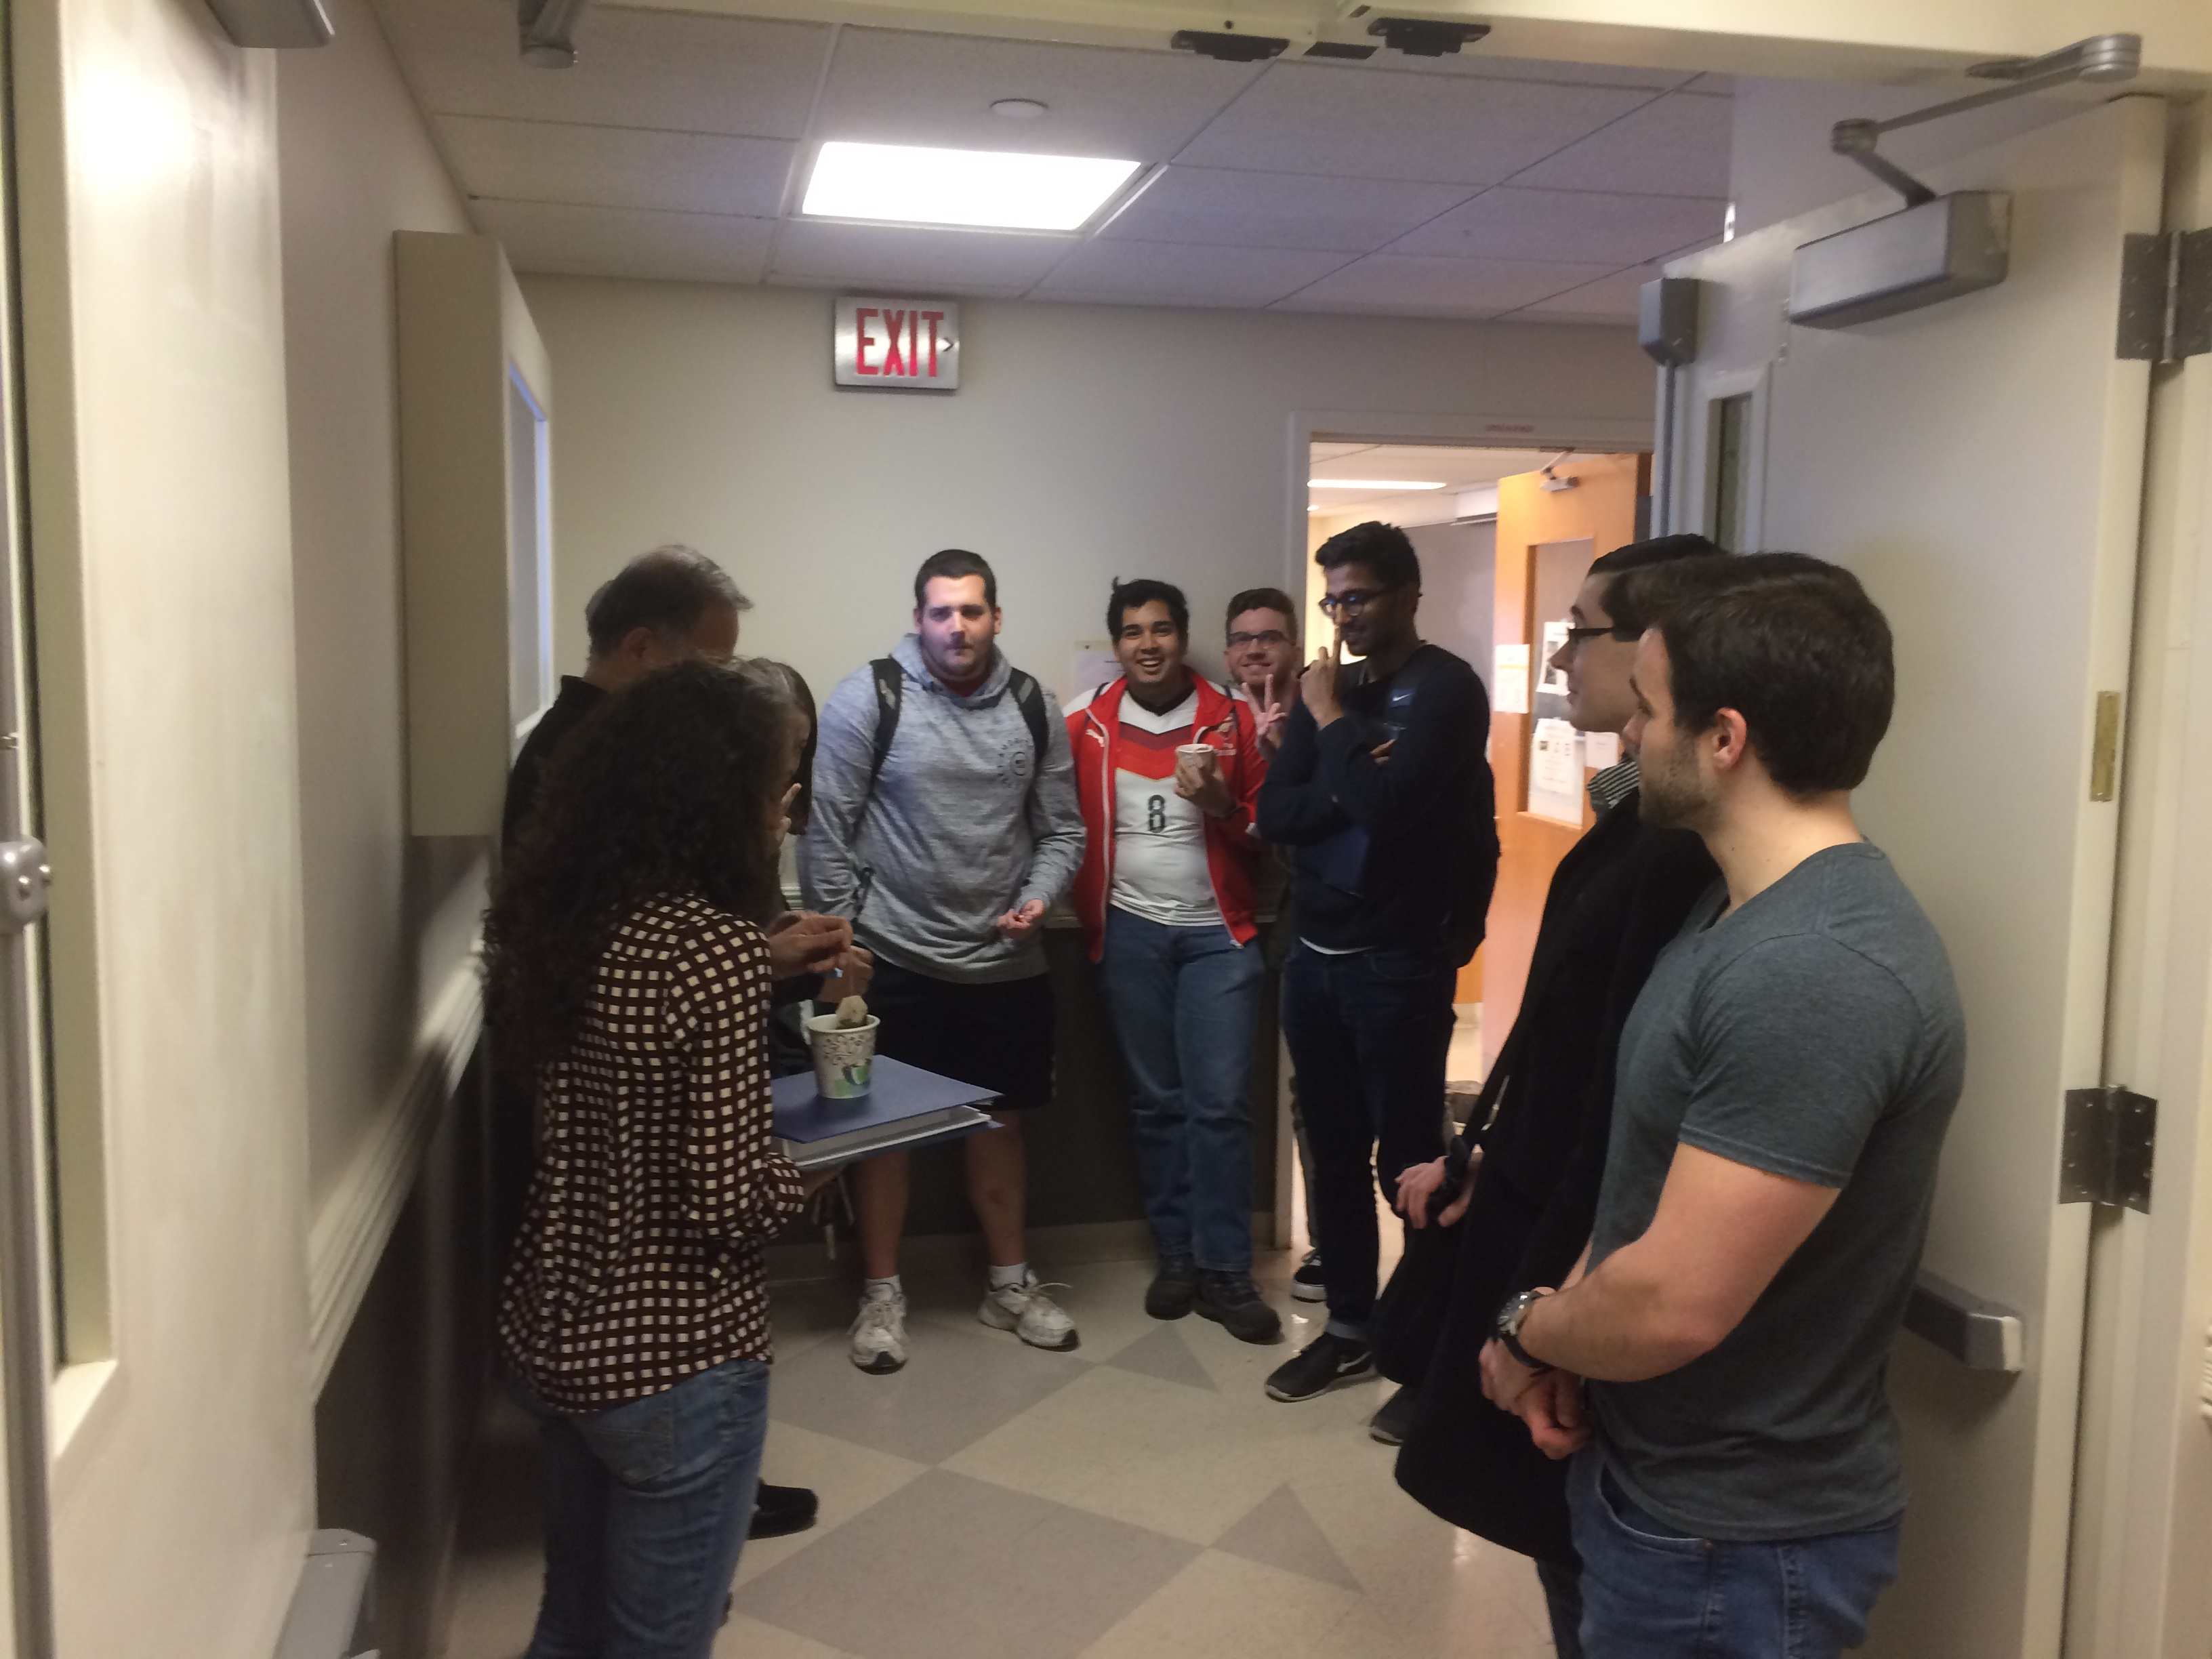 Students waiting outside class